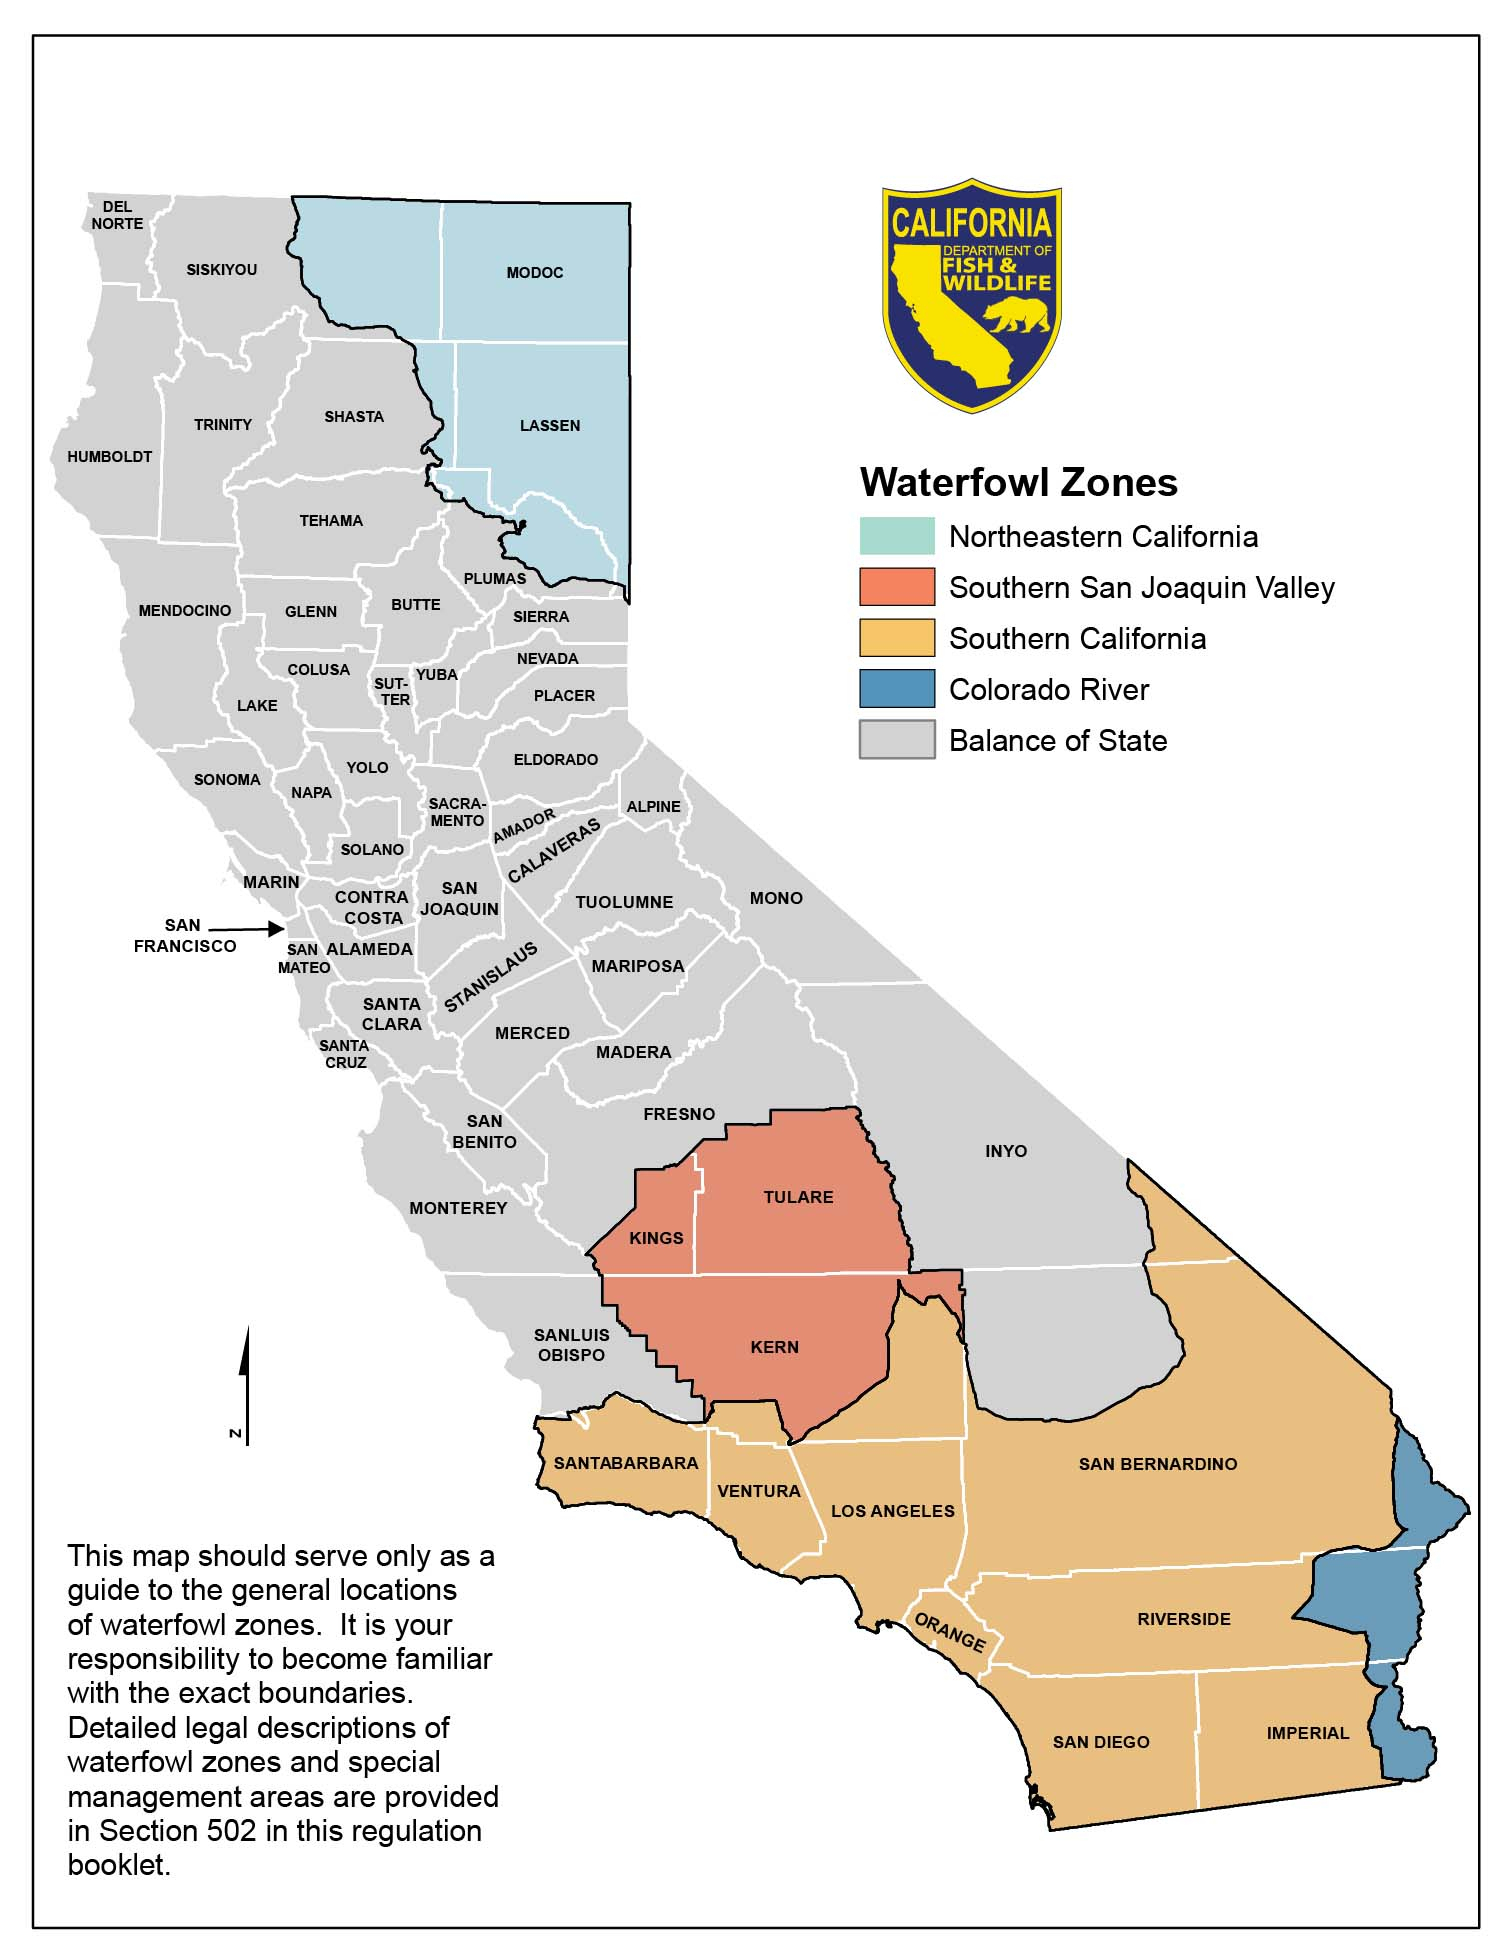 Season Dates And Bag Limits - California Waterfowl Association - California Hunting Zone Map